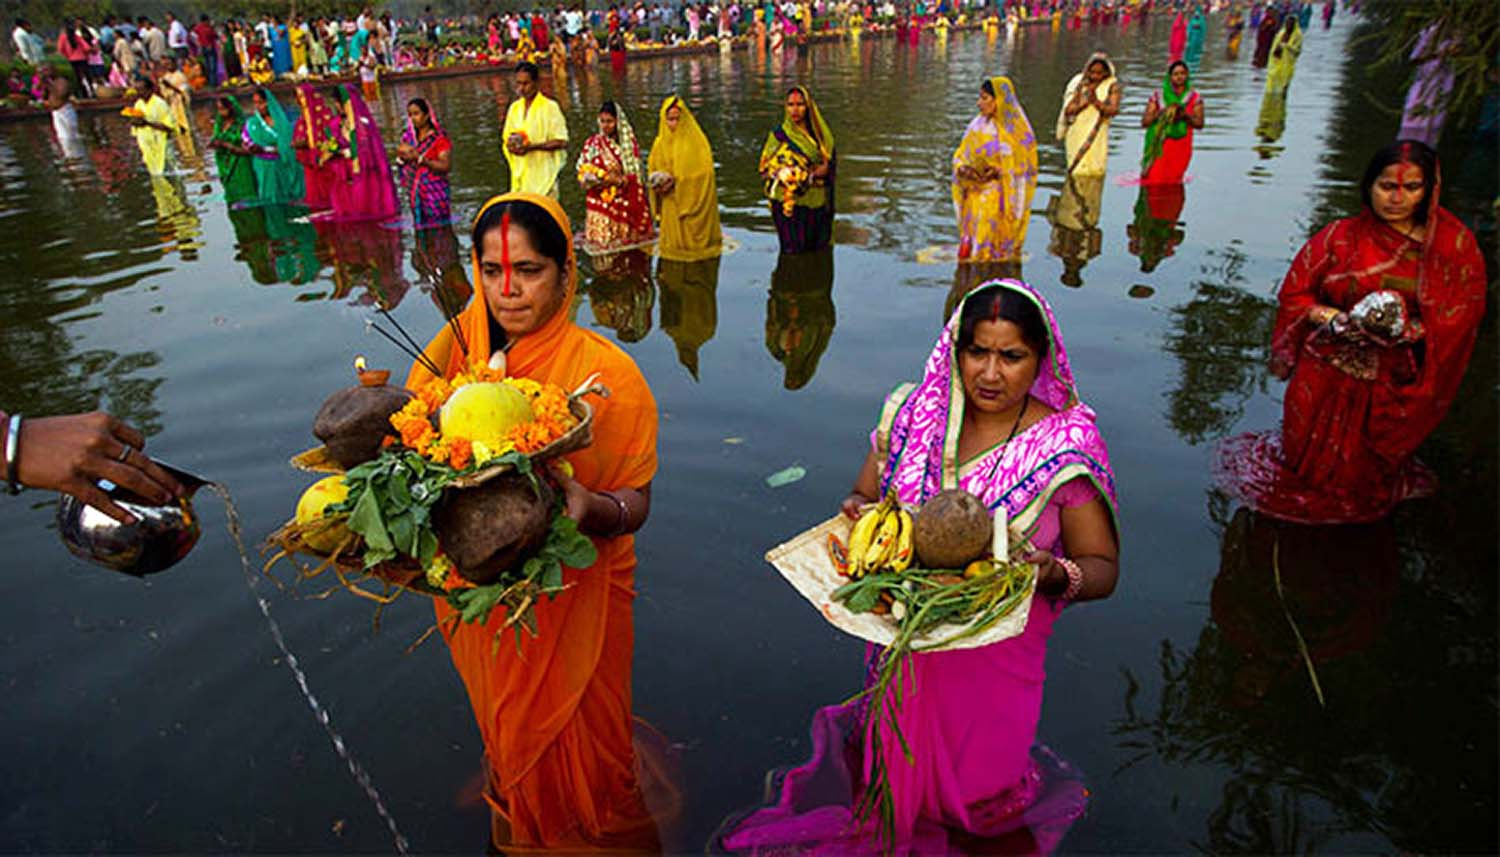 chhath puja hd image download